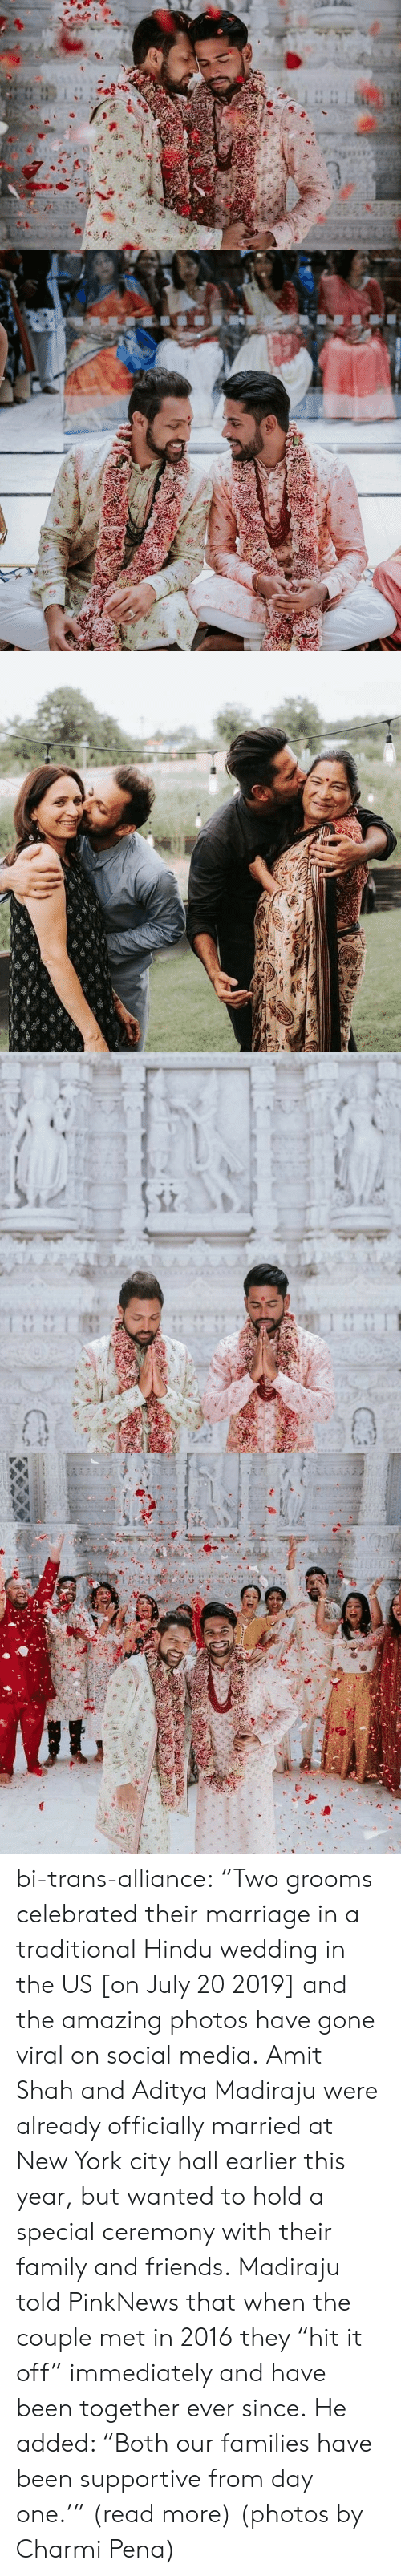 "York City: TA A  AAAA  1 1 bi-trans-alliance:   ""Two grooms celebrated their marriage in a traditional Hindu wedding in the US [on July 20 2019] and the amazing photos have gone viral on social media.   Amit Shah and Aditya Madiraju were already officially married at New York city hall earlier this year, but wanted to hold a special ceremony with their family and friends. Madiraju told PinkNews that when the couple met in 2016 they ""hit it off"" immediately and have been together ever since. He added: ""Both our families have been supportive from day one.'"" (read more) (photos by Charmi Pena)"